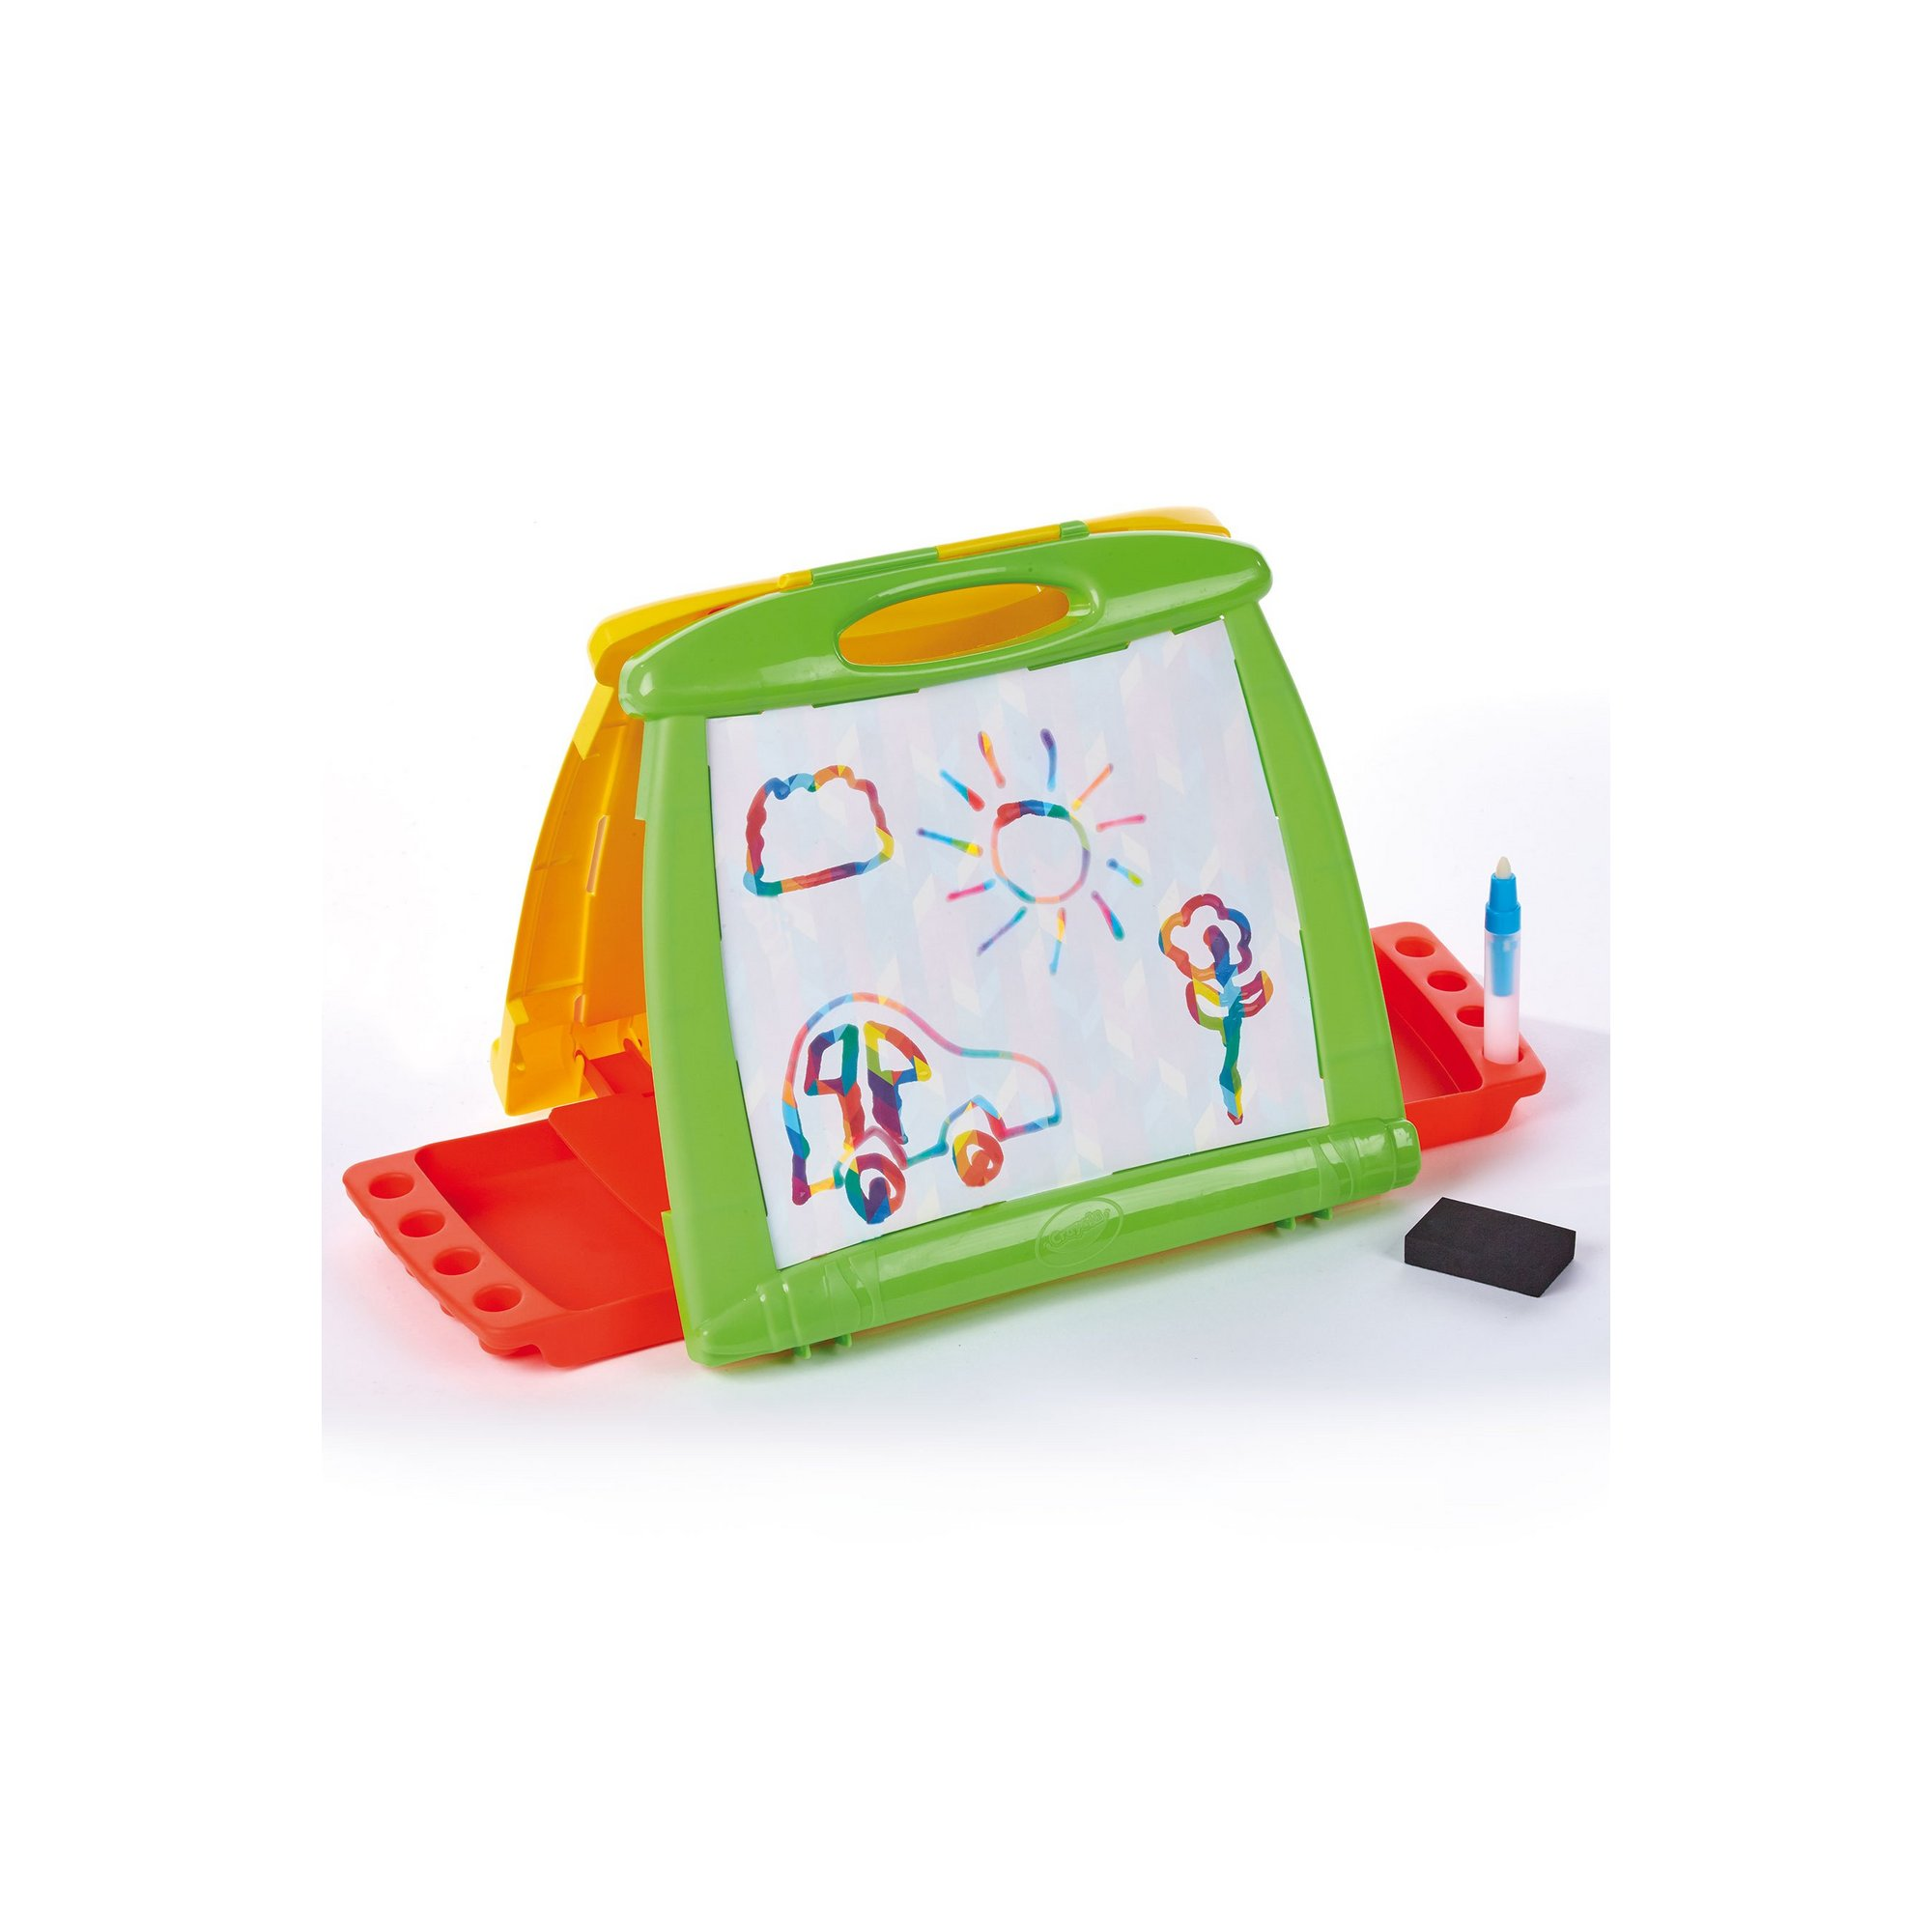 Image of Crayola Art-To-Go Water Doodle Easel